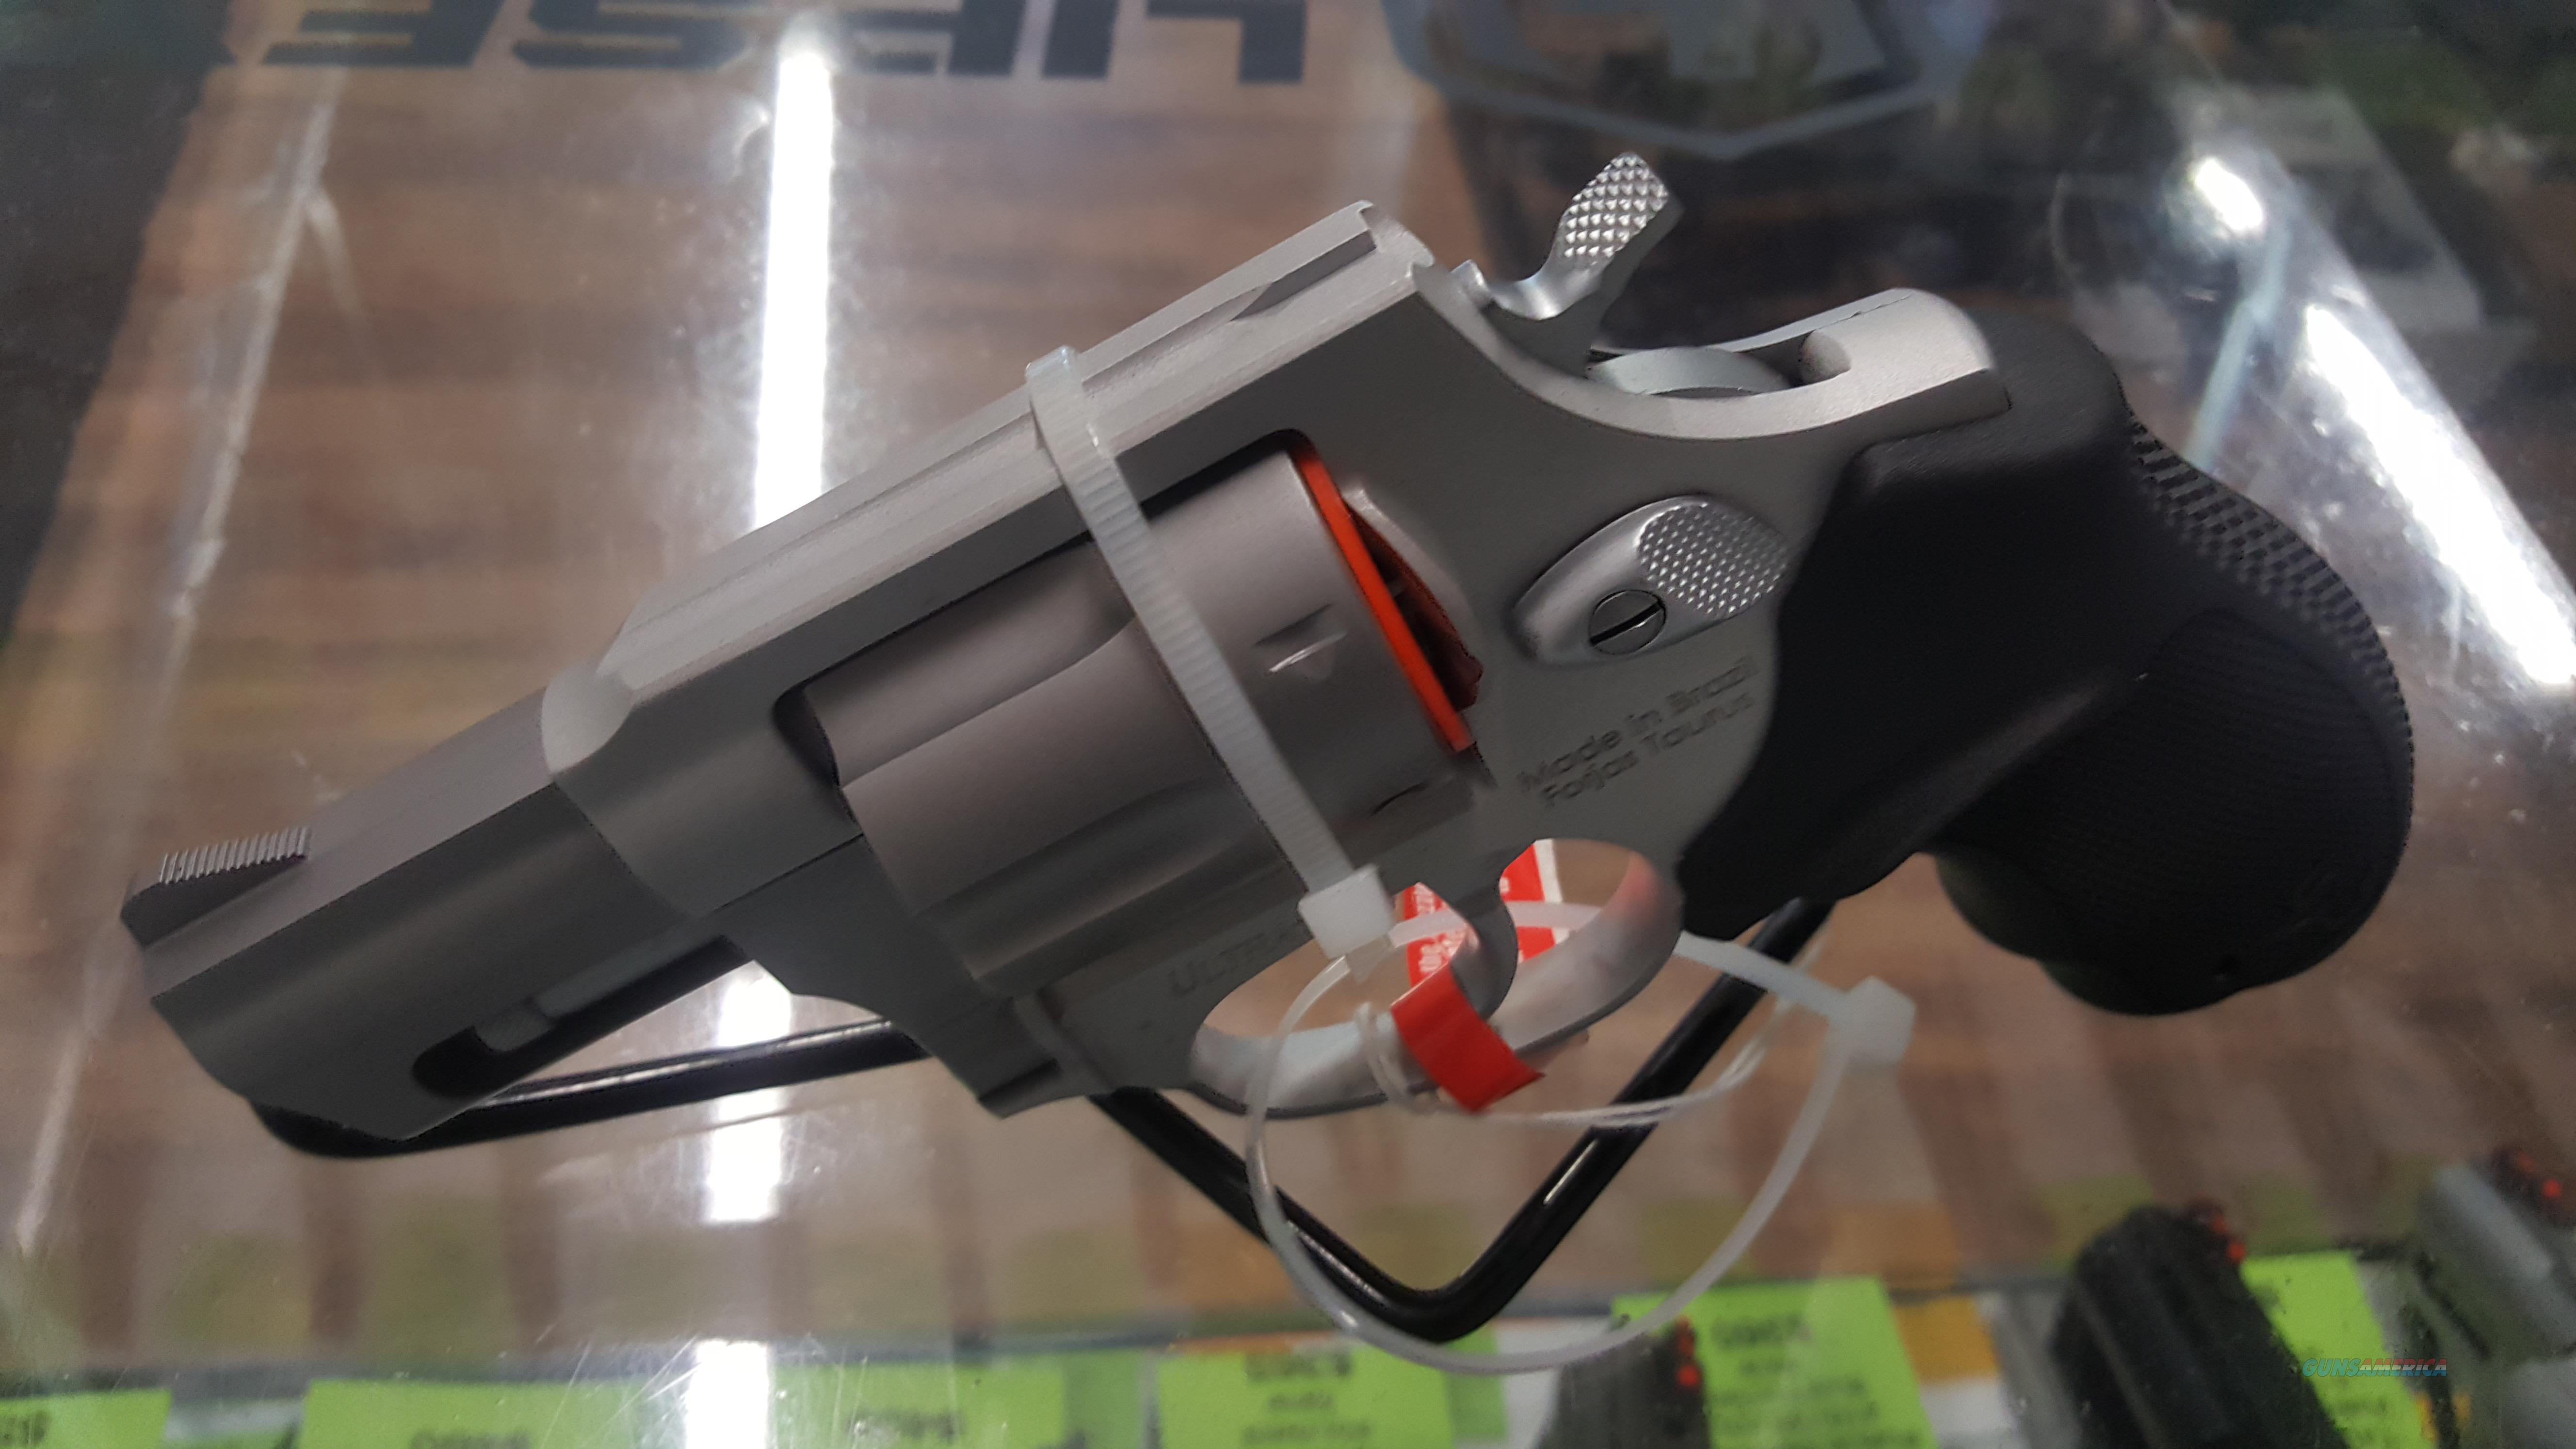 Taurus 856 Ultra-Lite 38 Special Stainless Revolver, New In Box  Guns > Pistols > Taurus Pistols > Revolvers